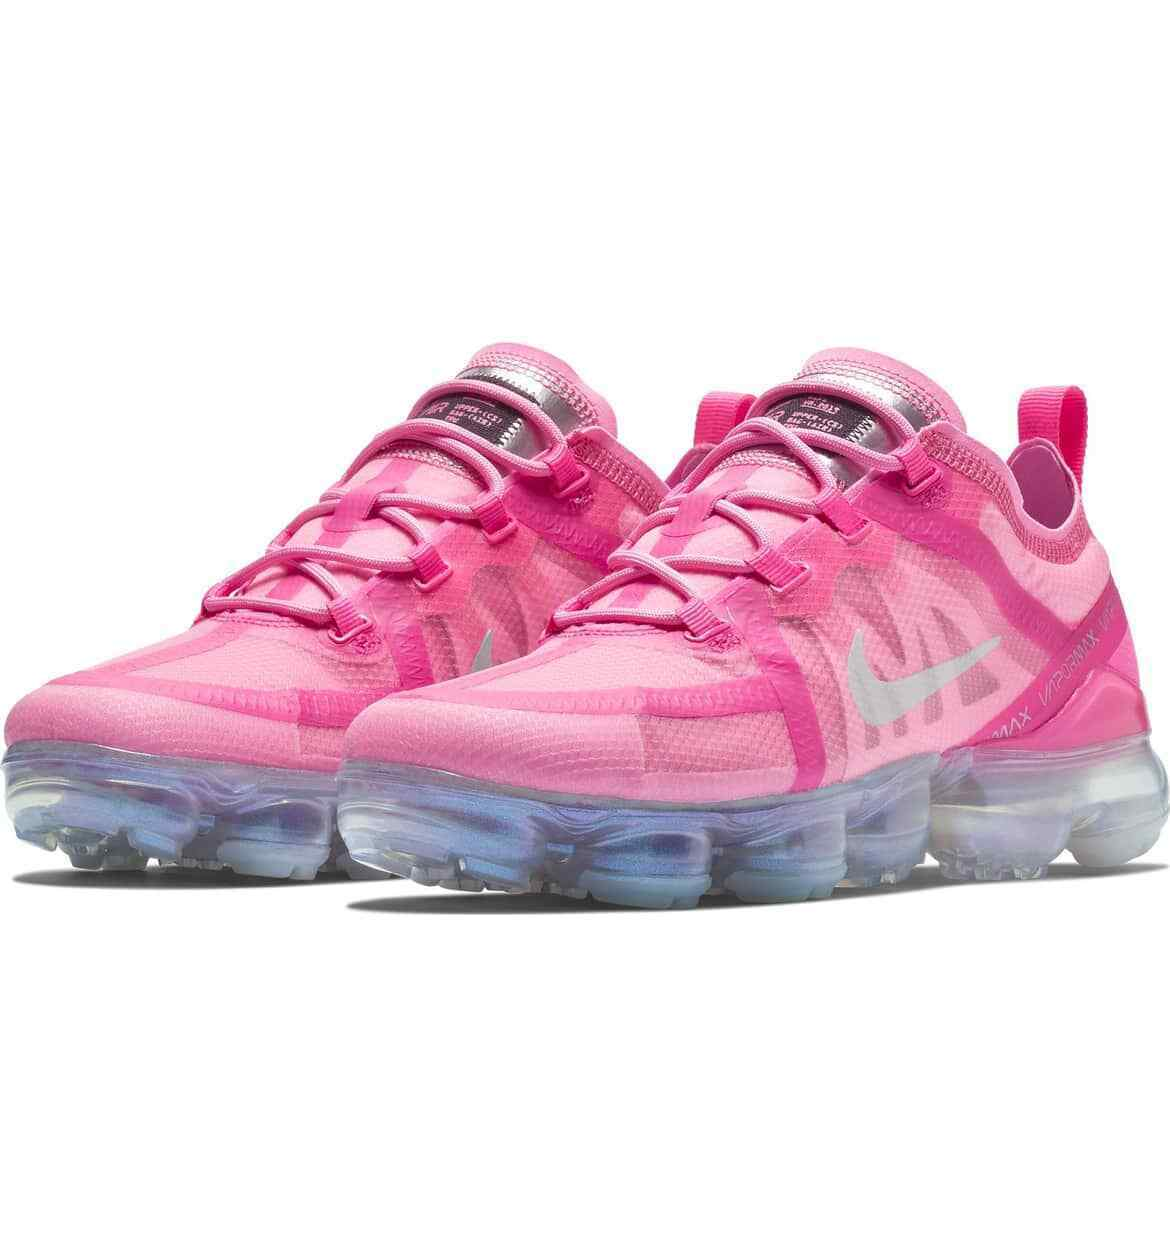 Nike Women's Air VaporMax - 2019 - New in Box - 100% Authentic